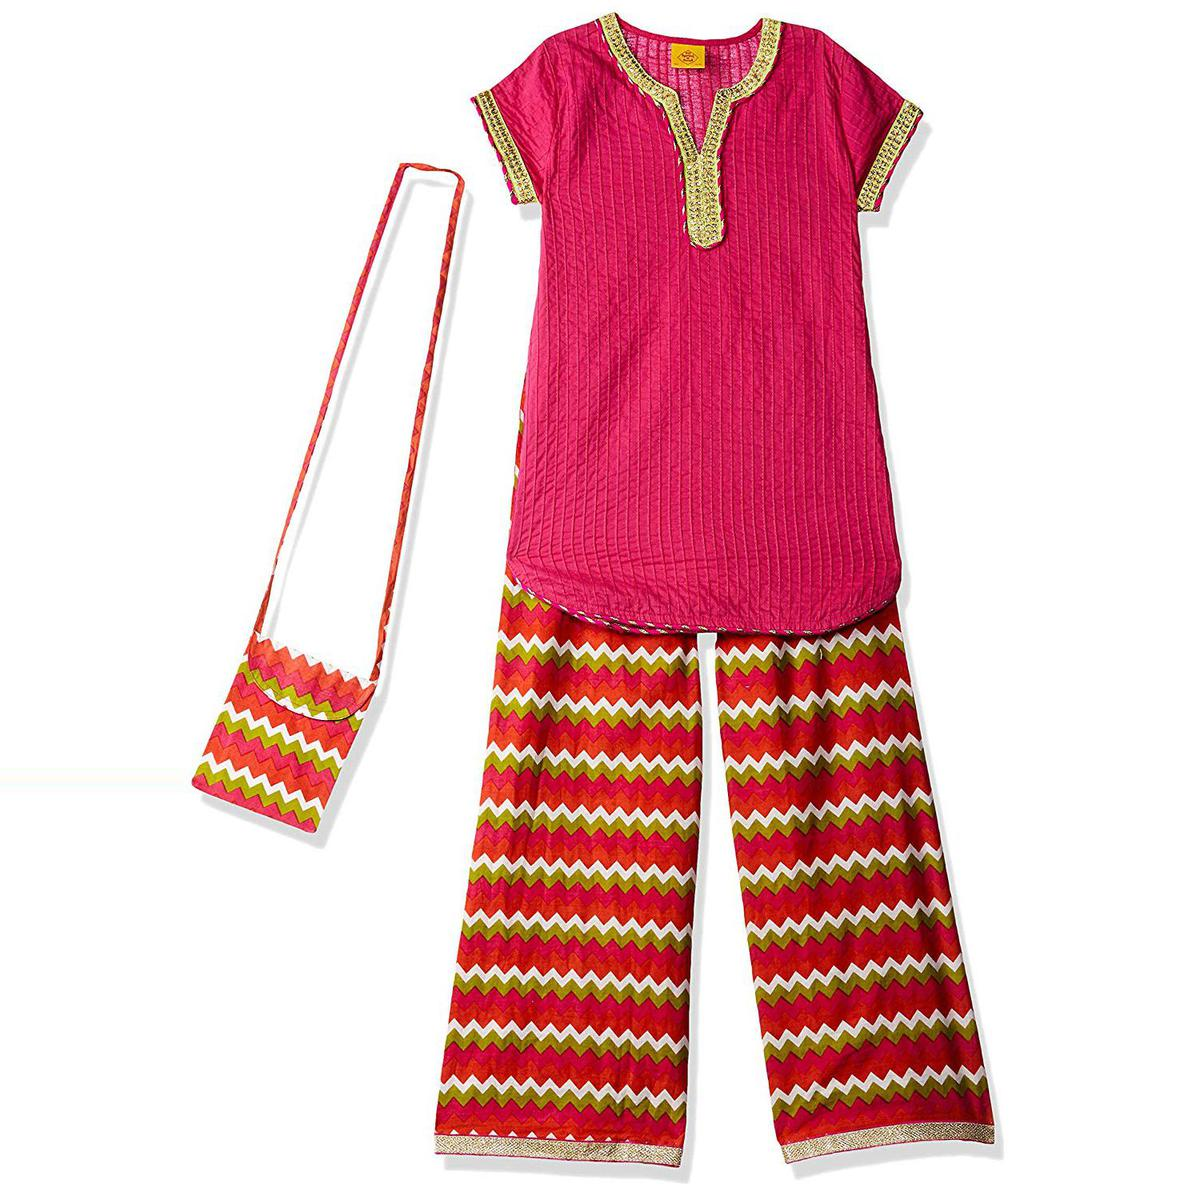 612 League - Pink Colored Ethnic Wear Cotton Kurti Palazzo Set For Girls